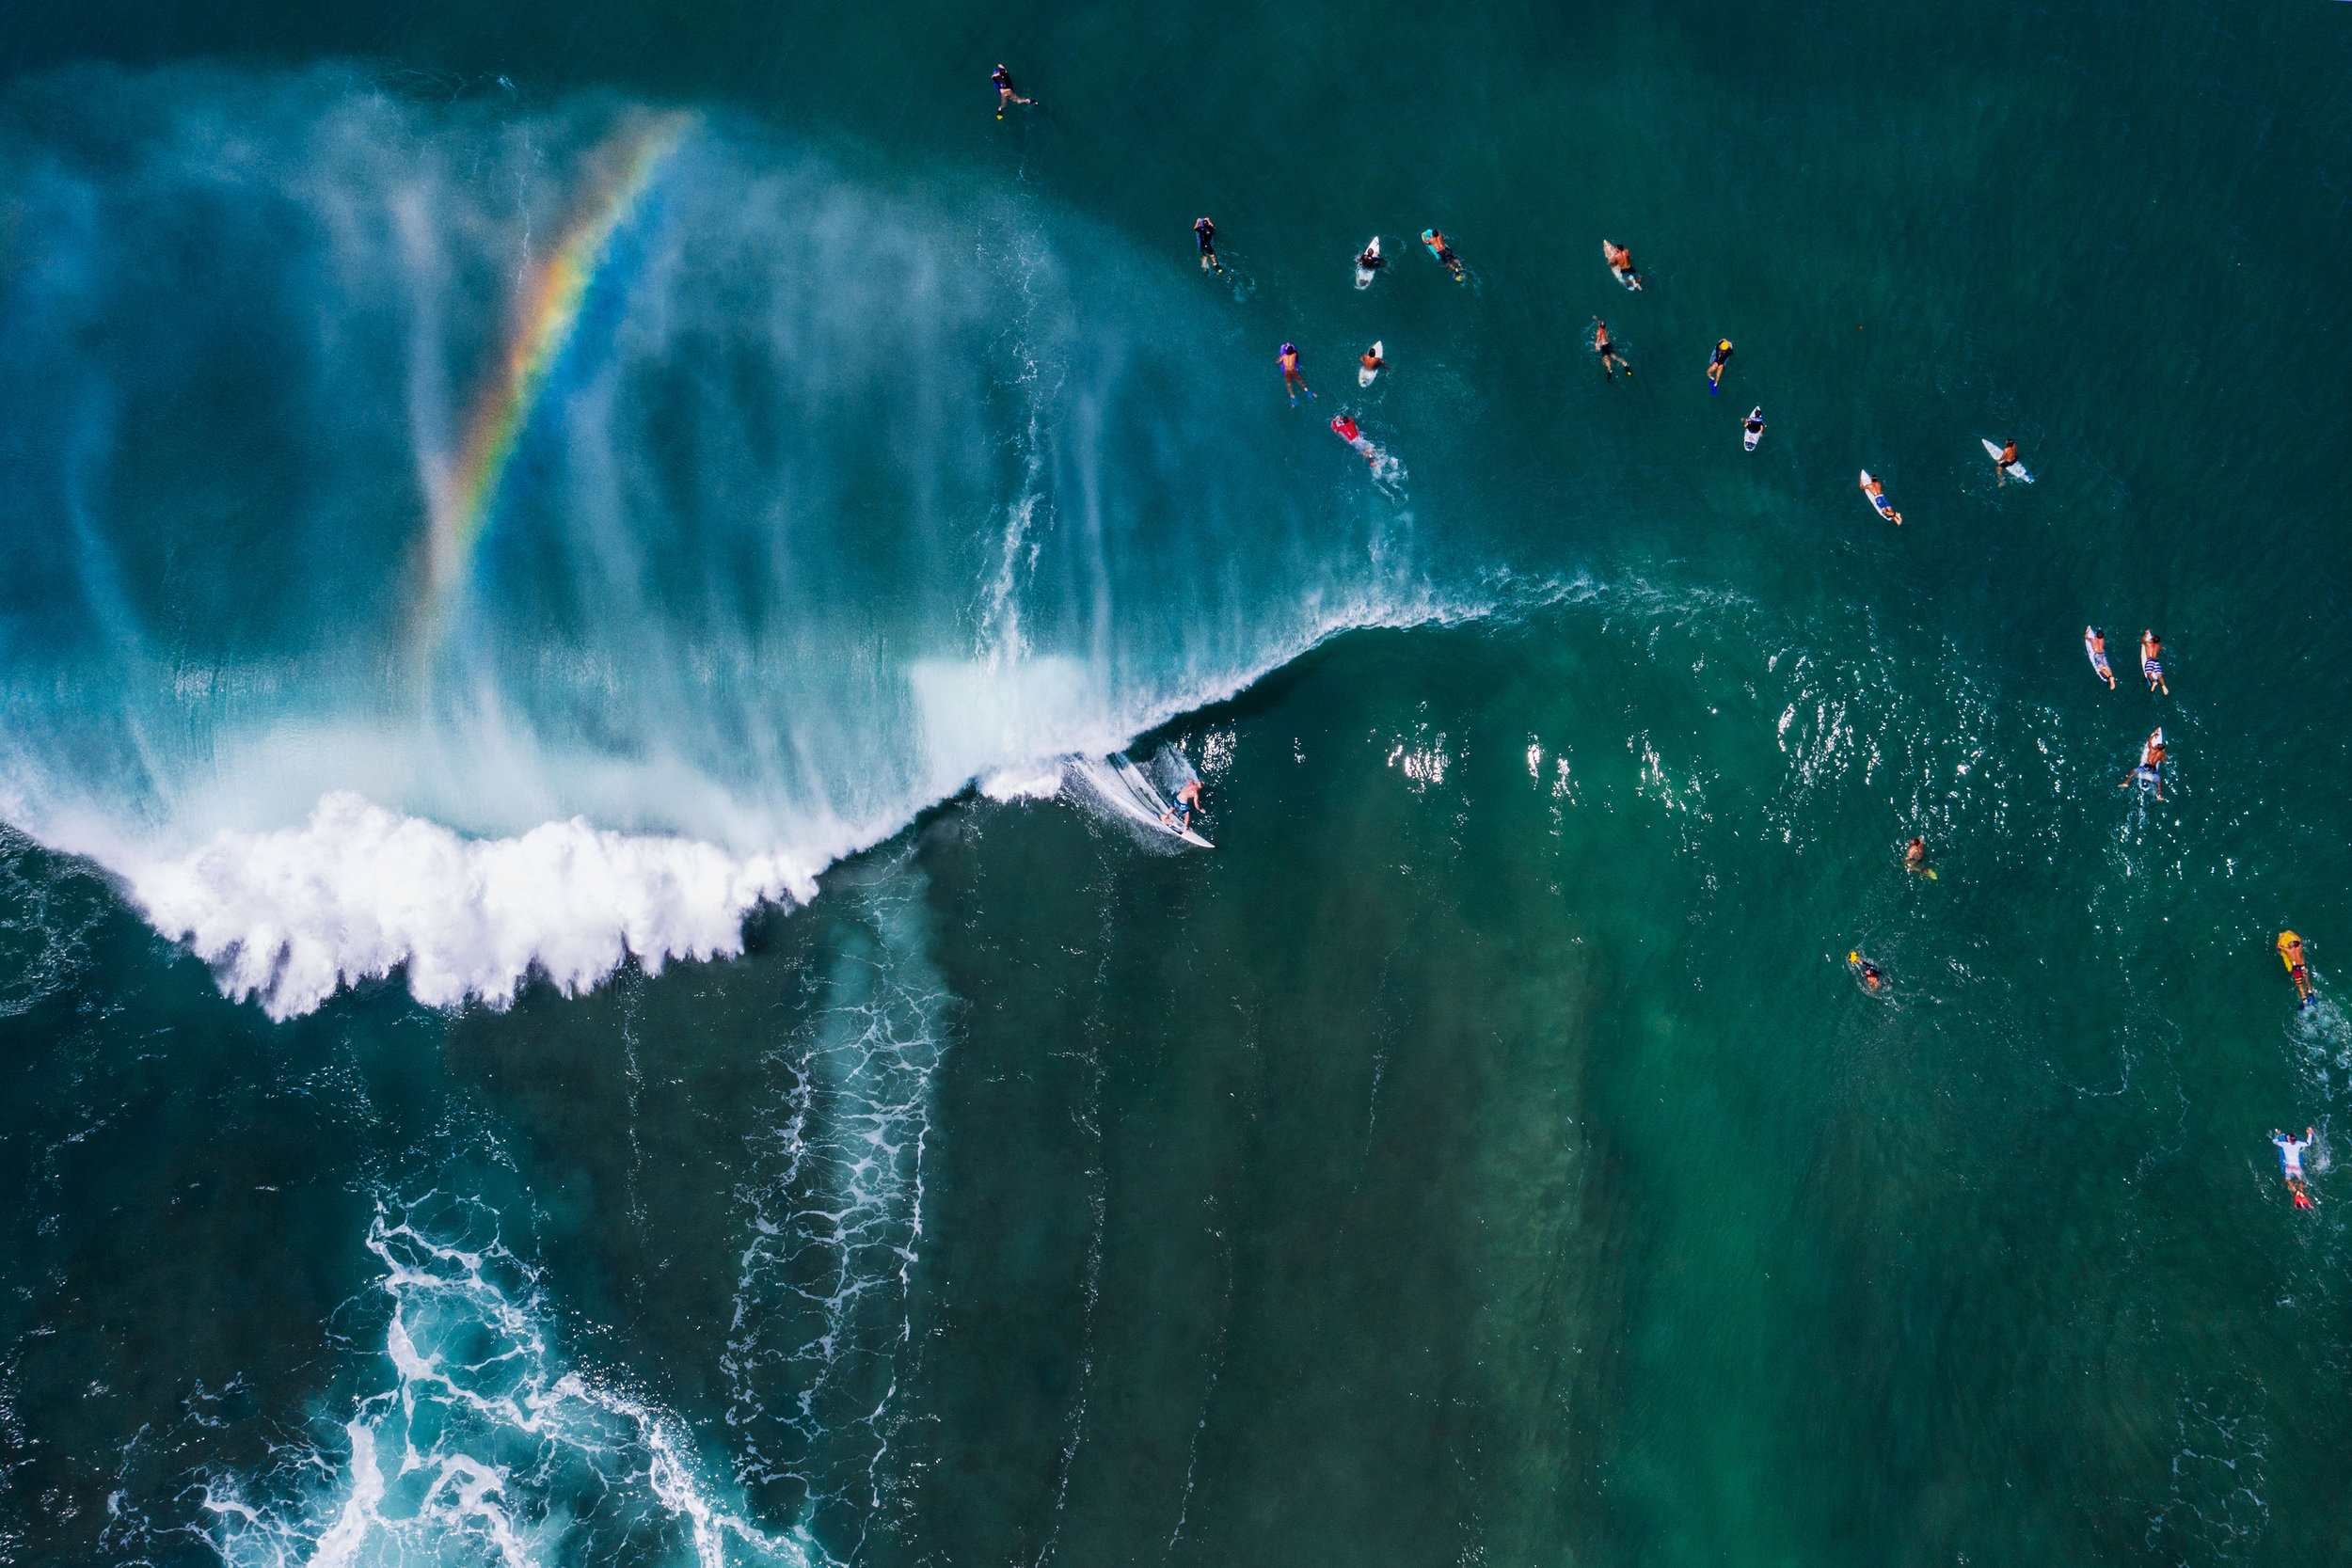 connor trimble hawaii drone surfing photography